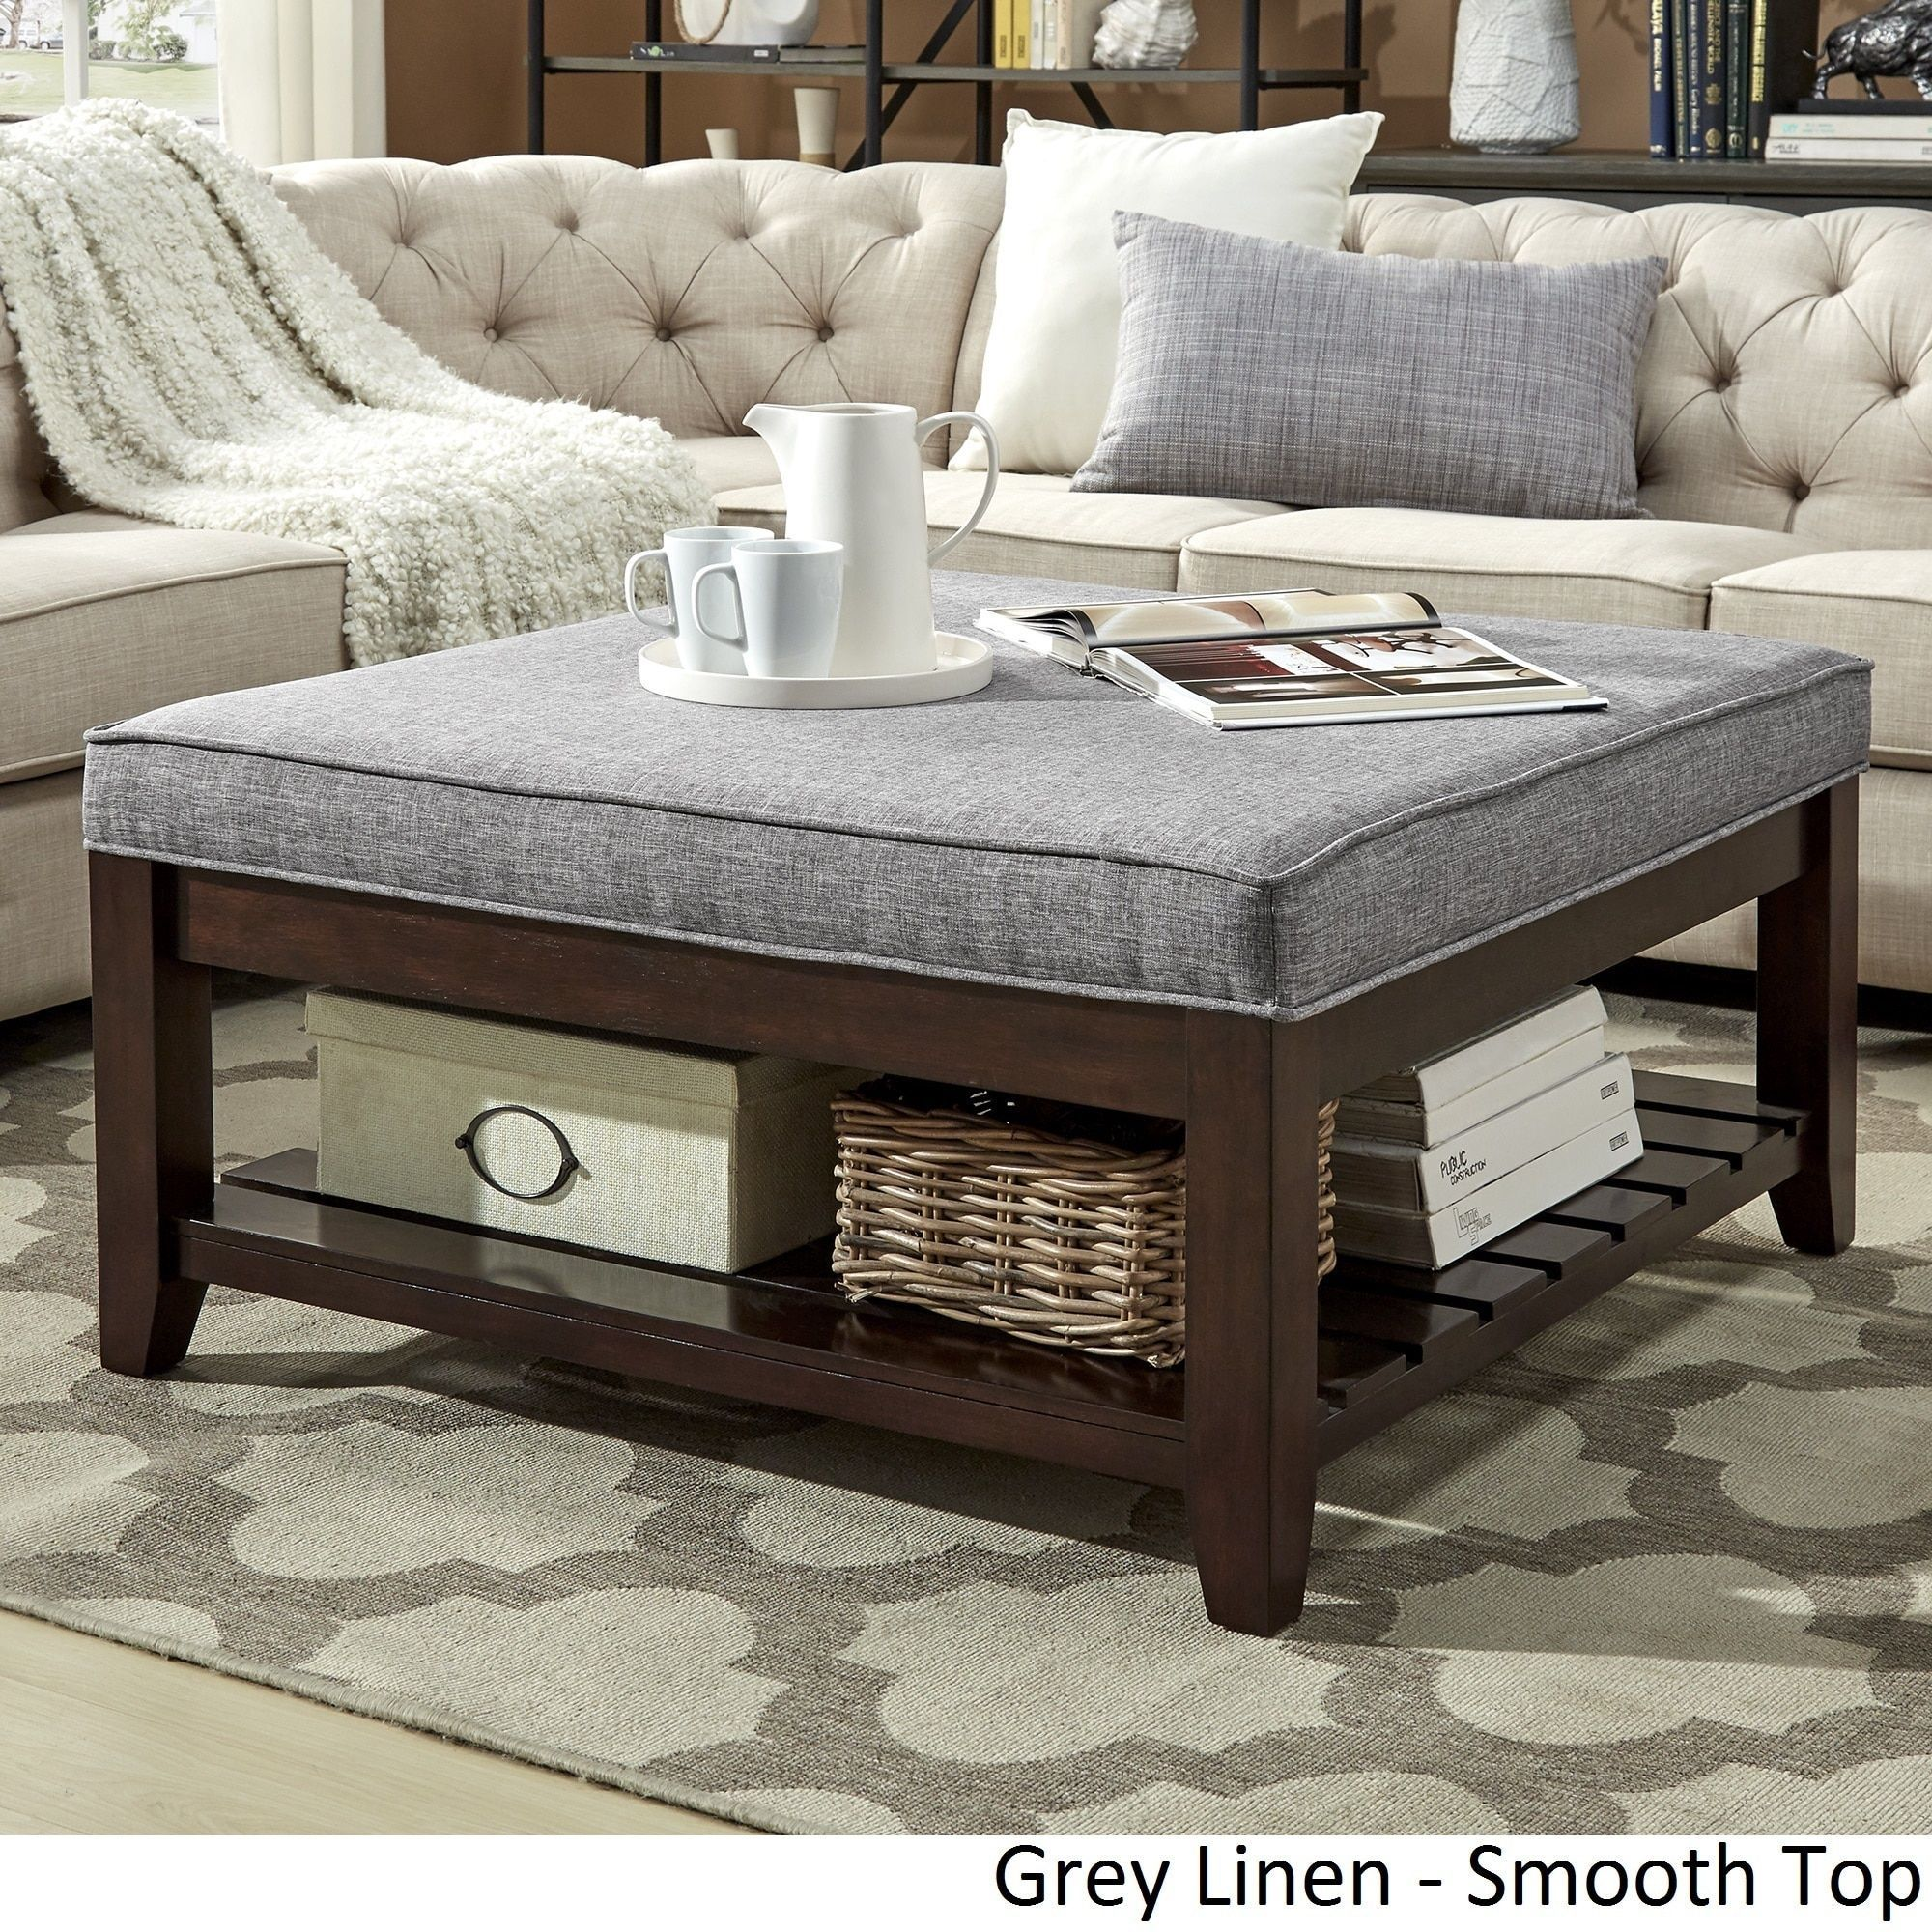 Ottoman Coffee Table With Sliding Wood Top: Lennon Espresso Planked Storage Ottoman Coffee Table By